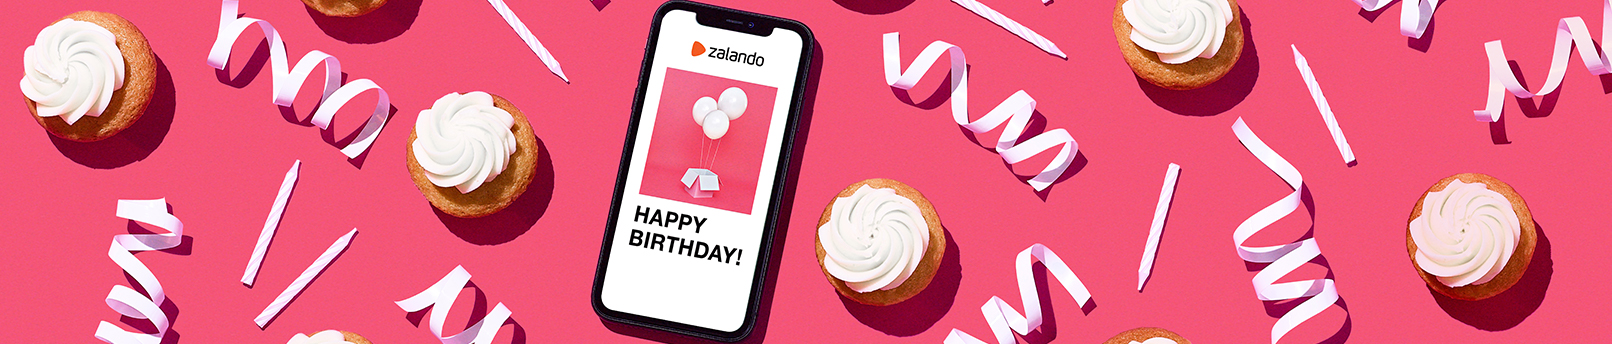 Zalando Gift Cards - Something new for Birthday